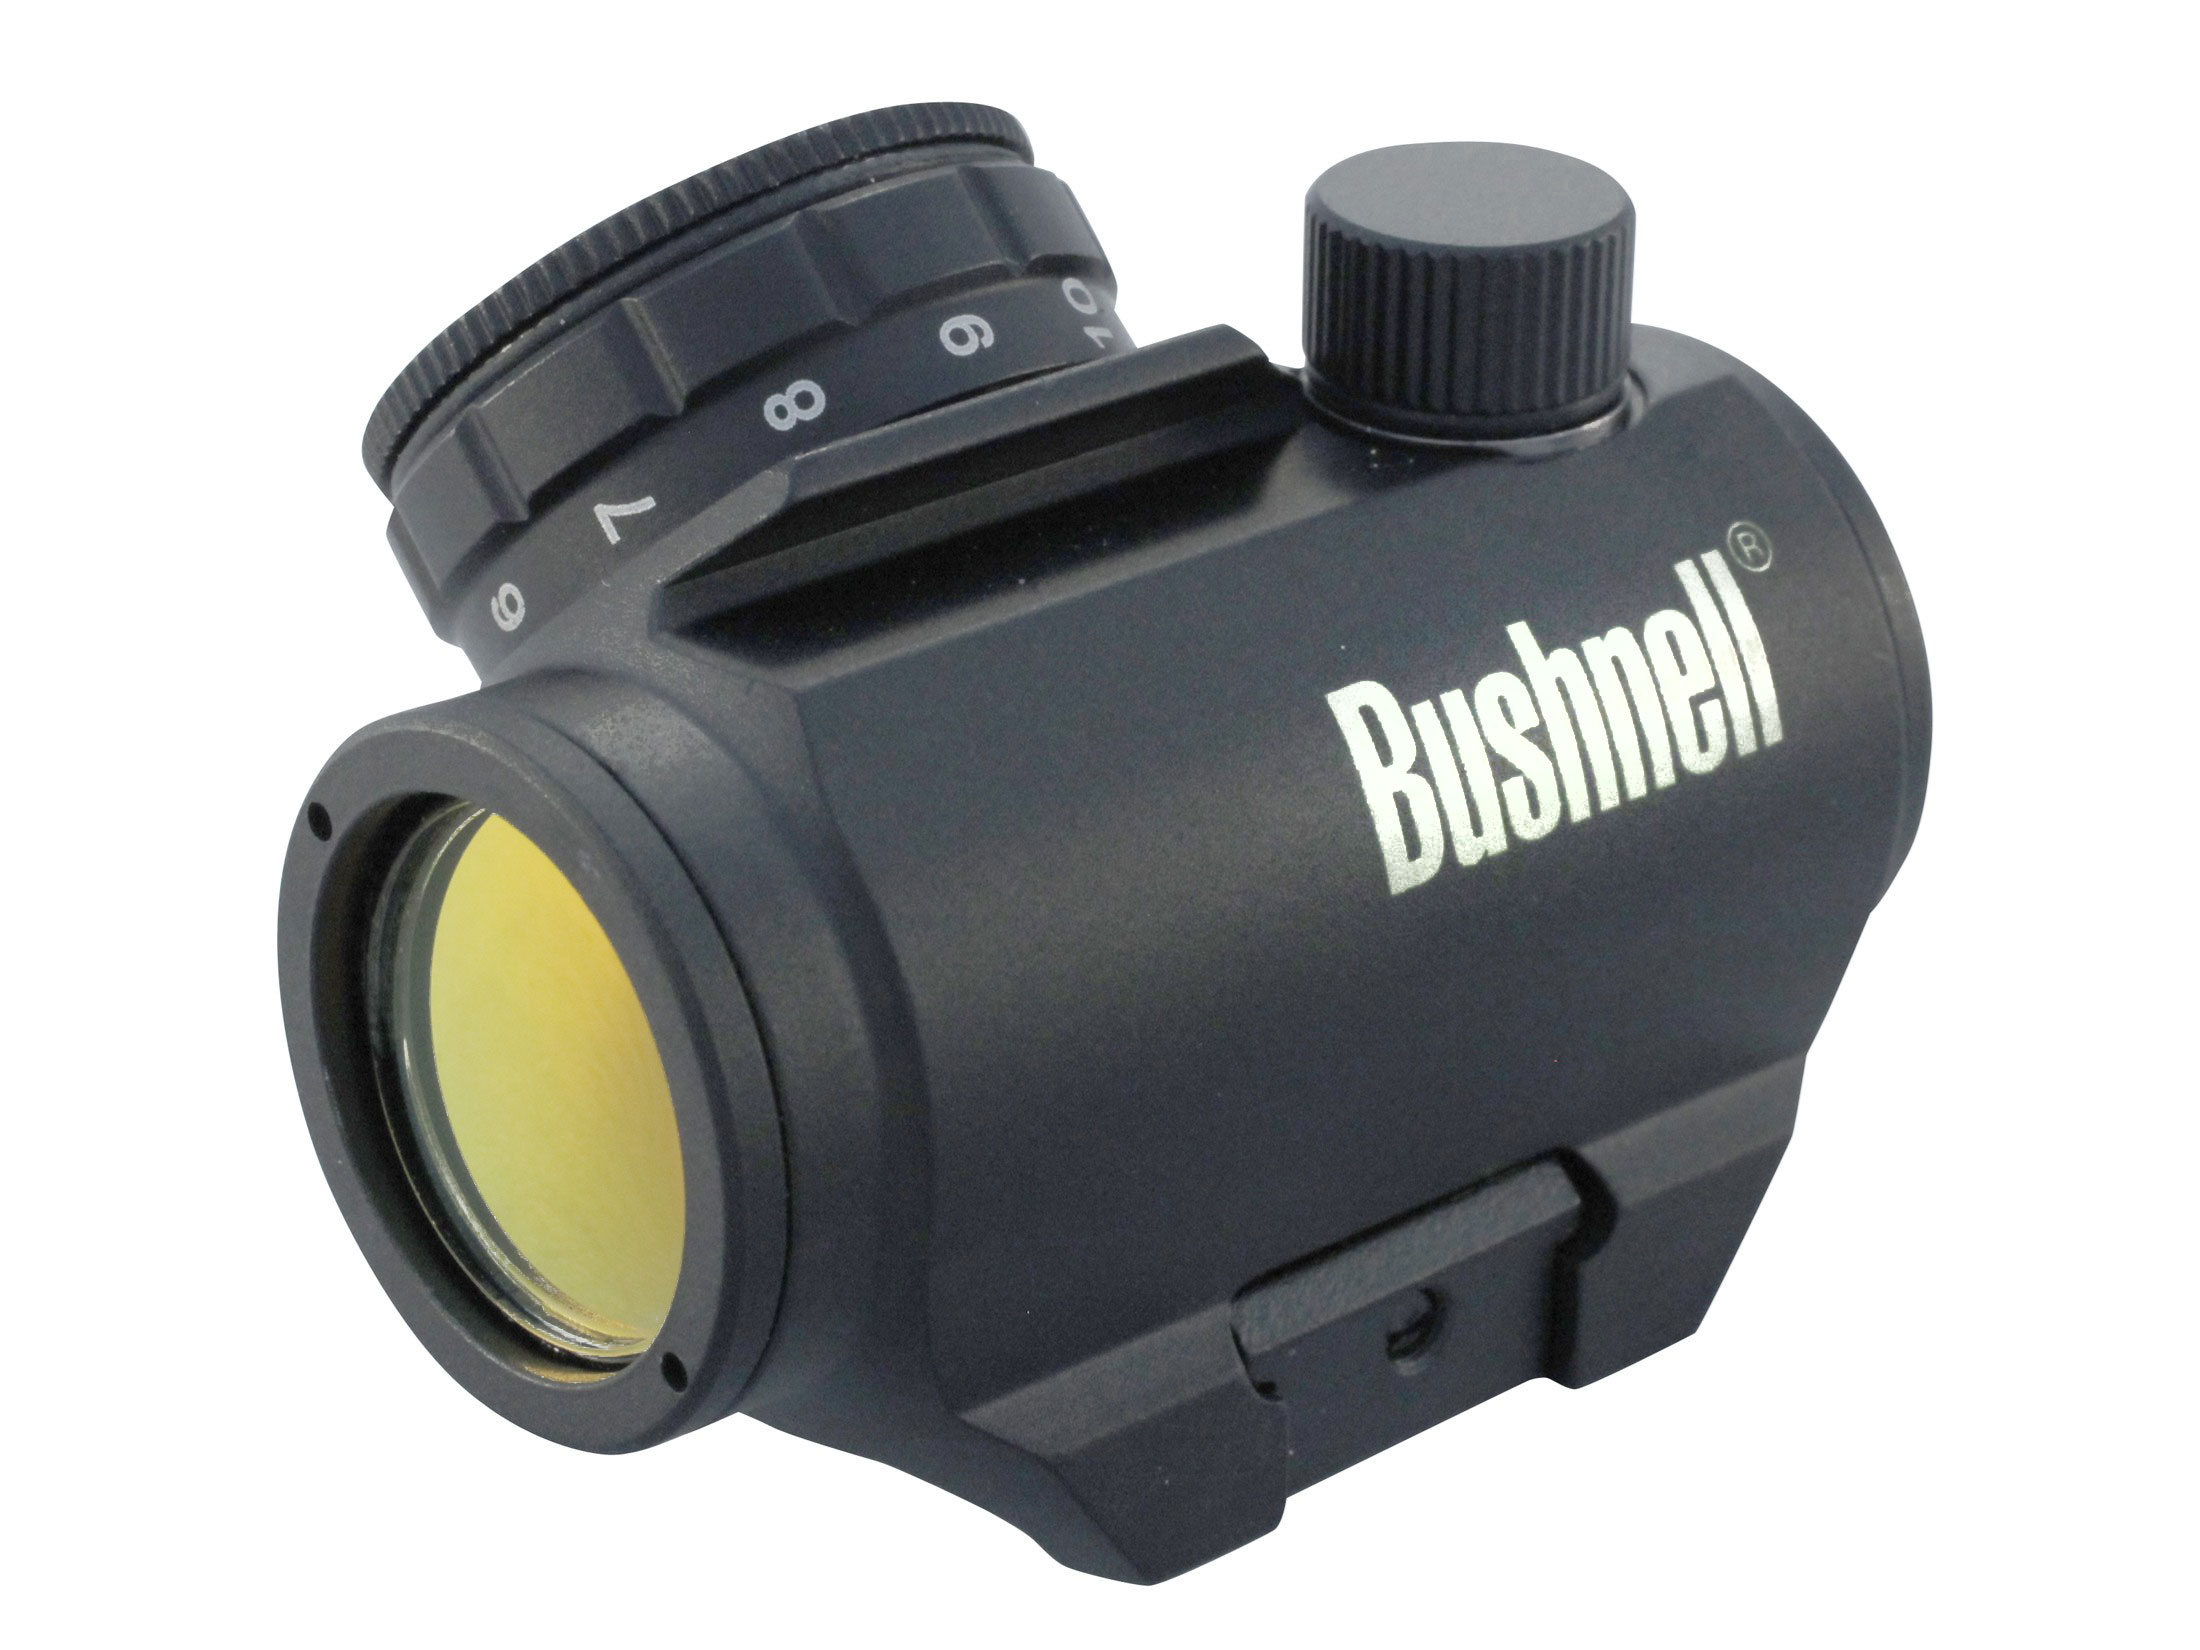 Bushnell TRS 25 Trophy Red Dot Sight Riflescope Black 3 MOA for Hunting